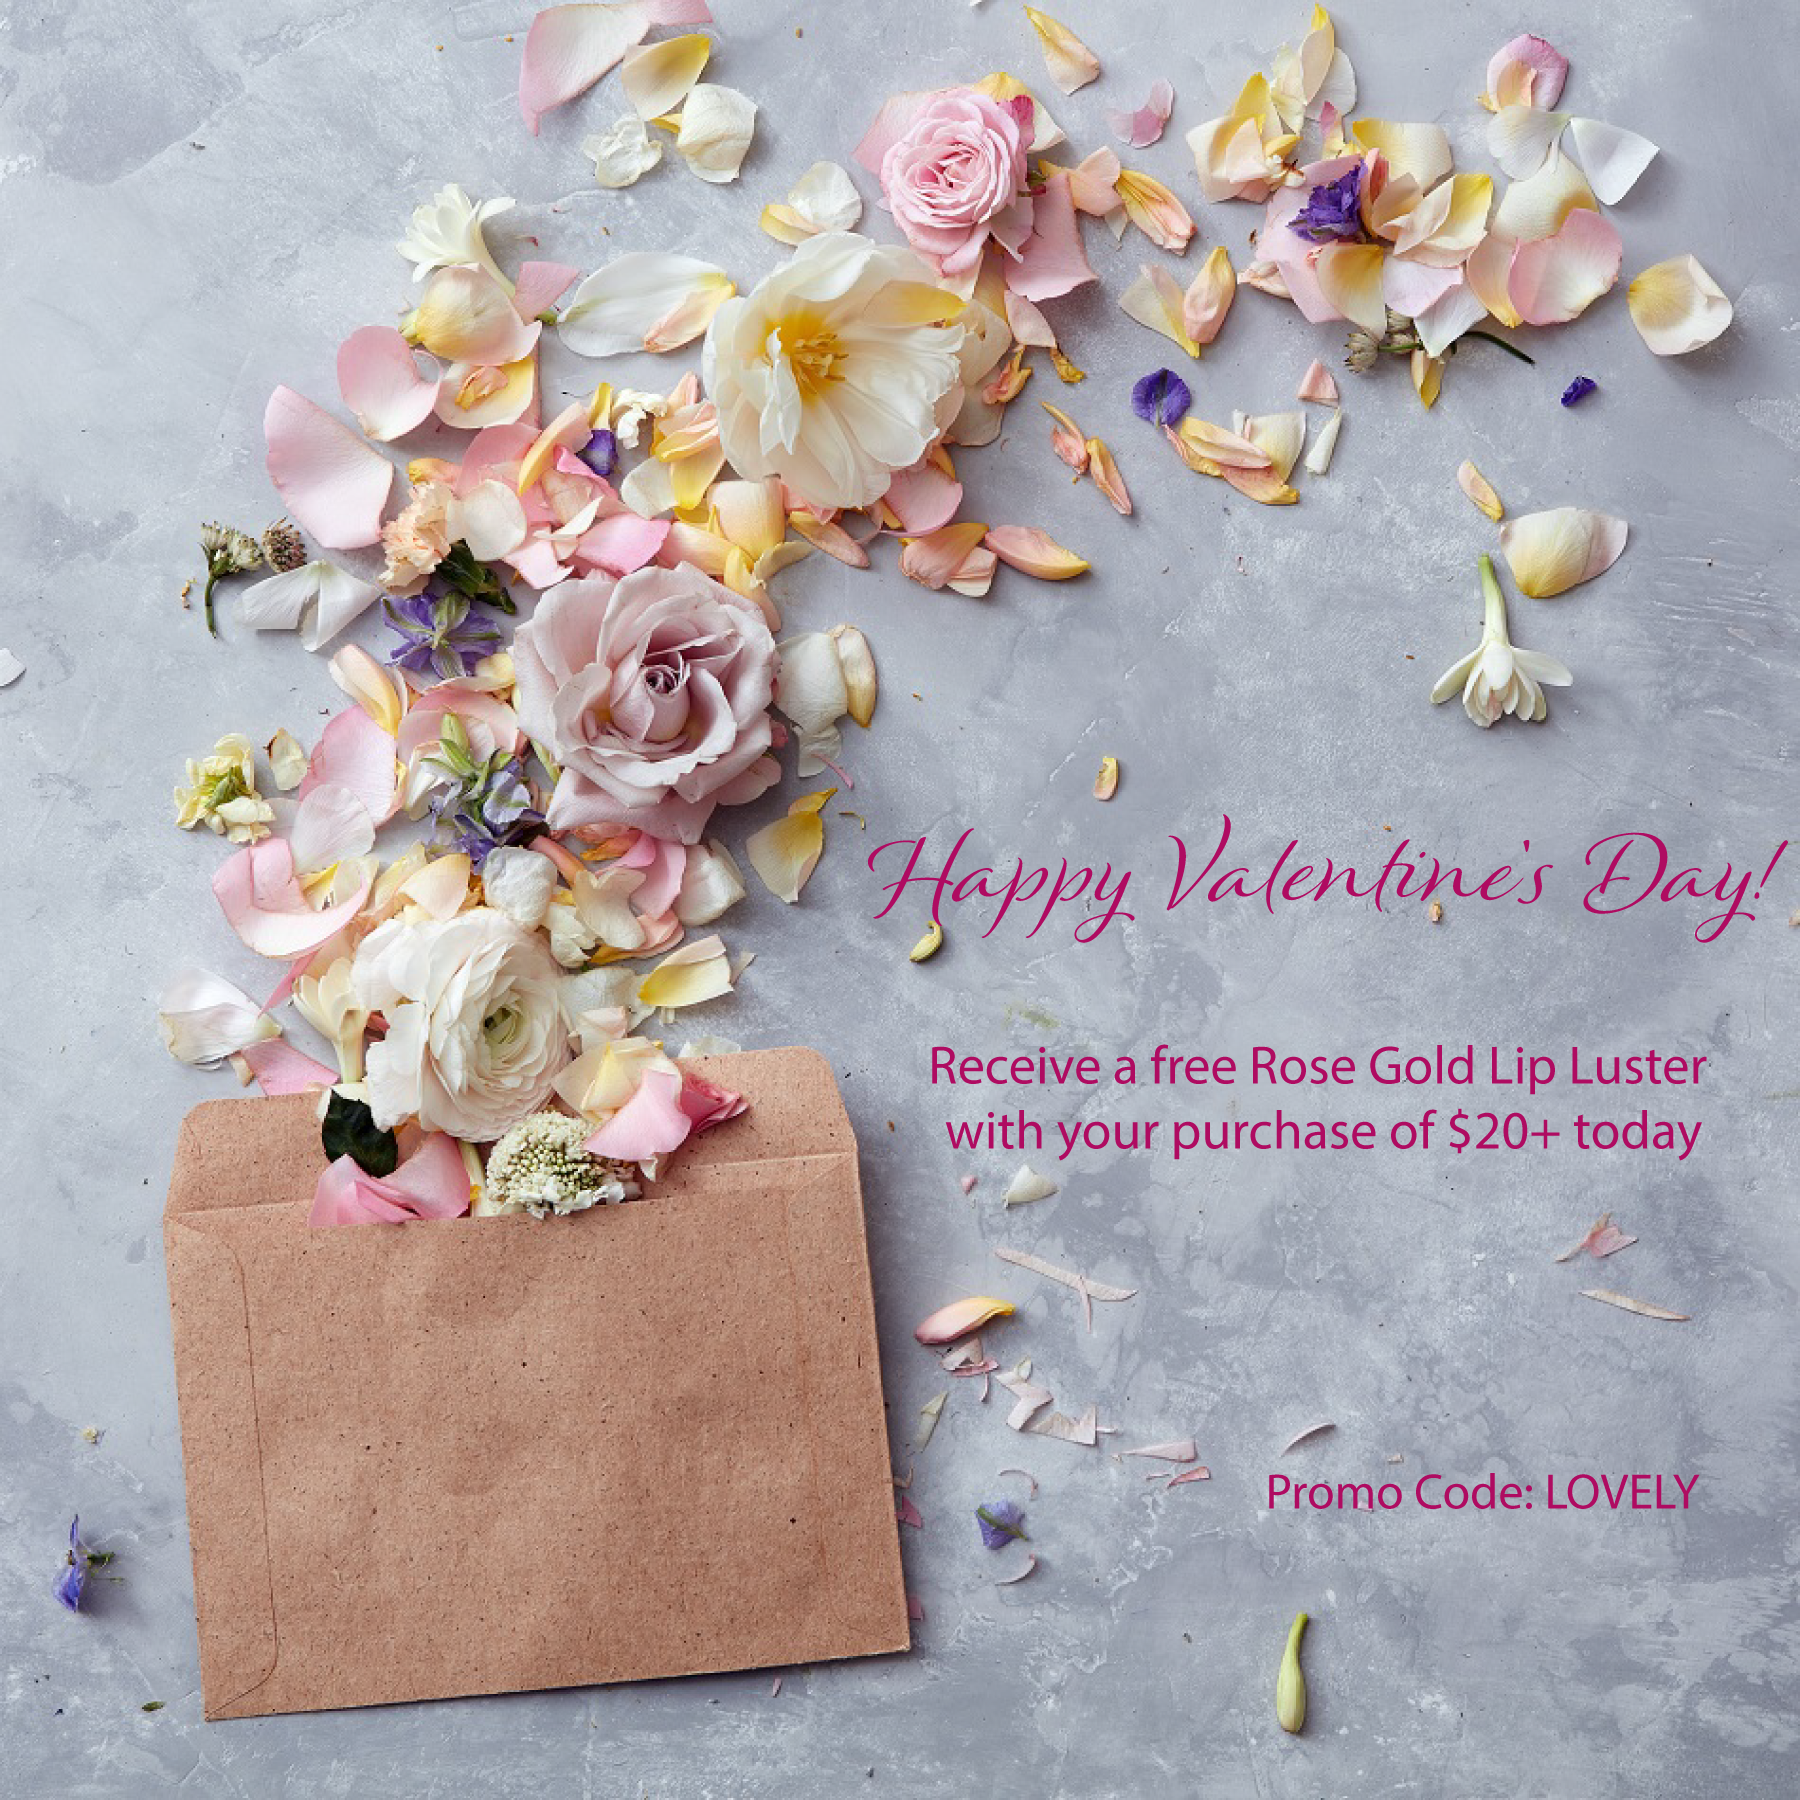 valentines-day-promo-2020-01.png